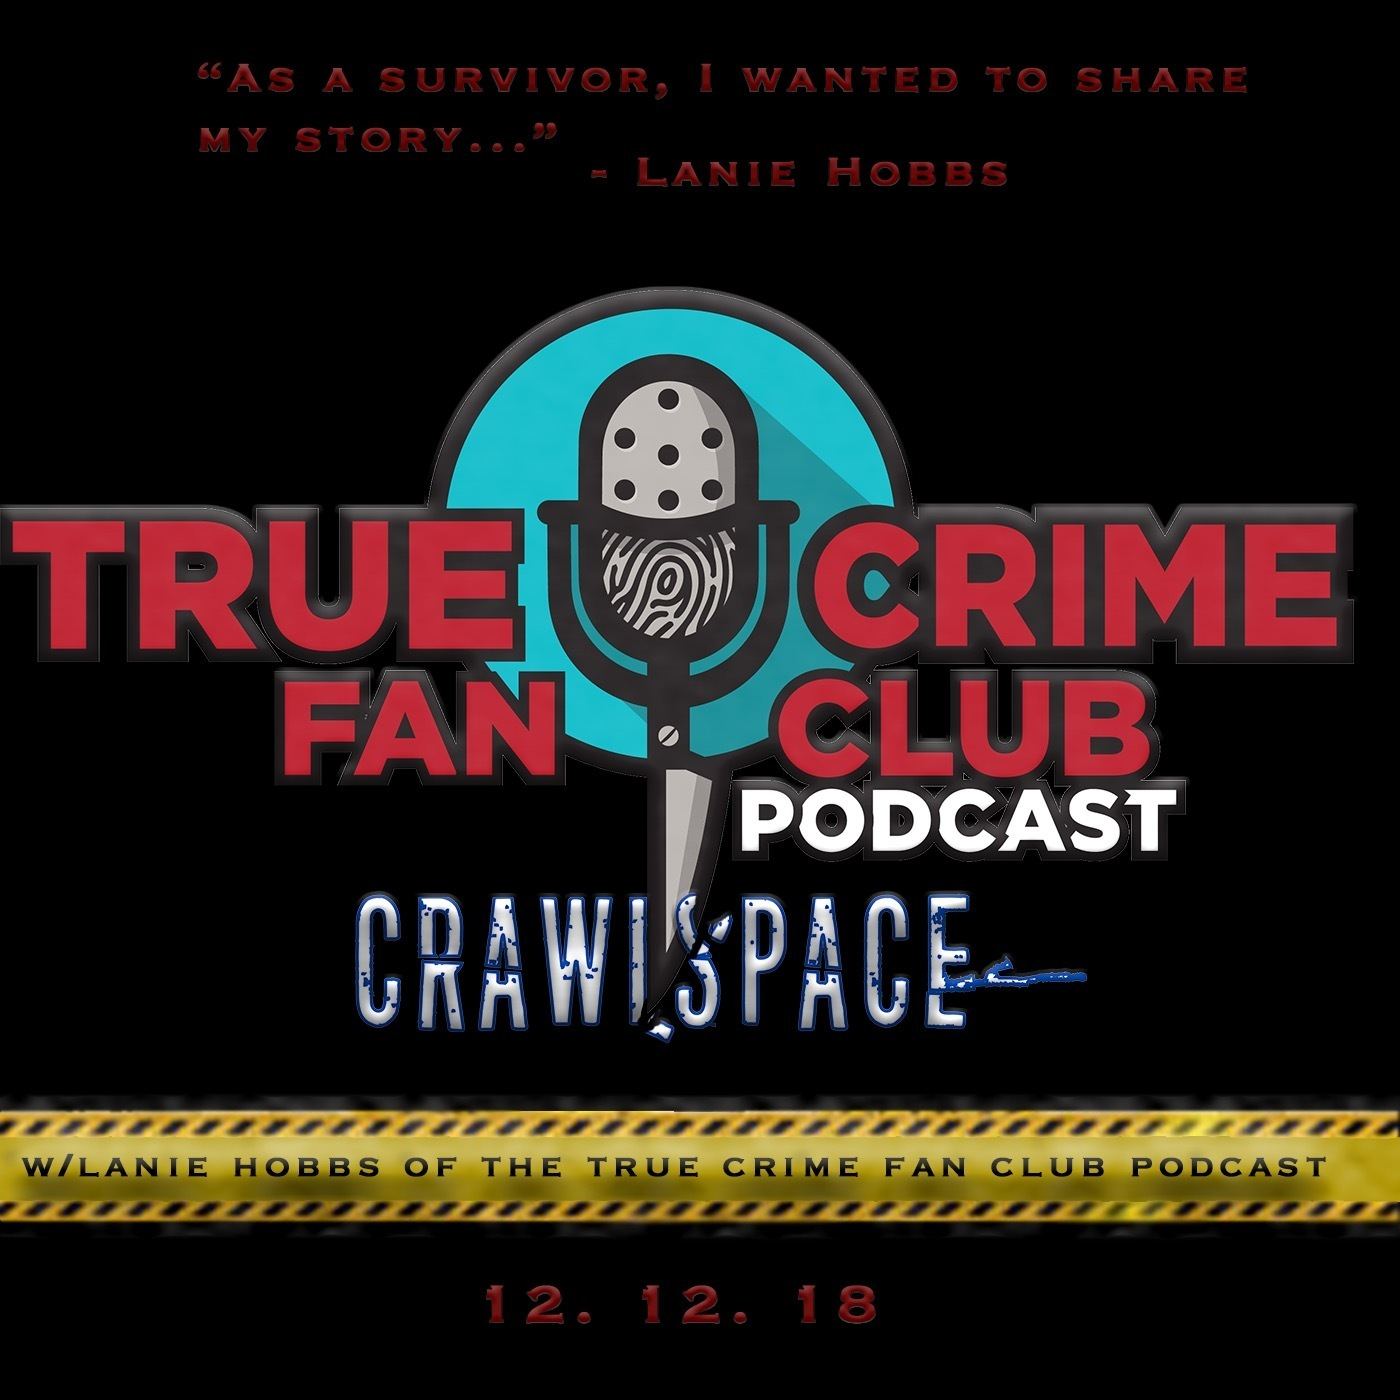 True Crime Fan Club